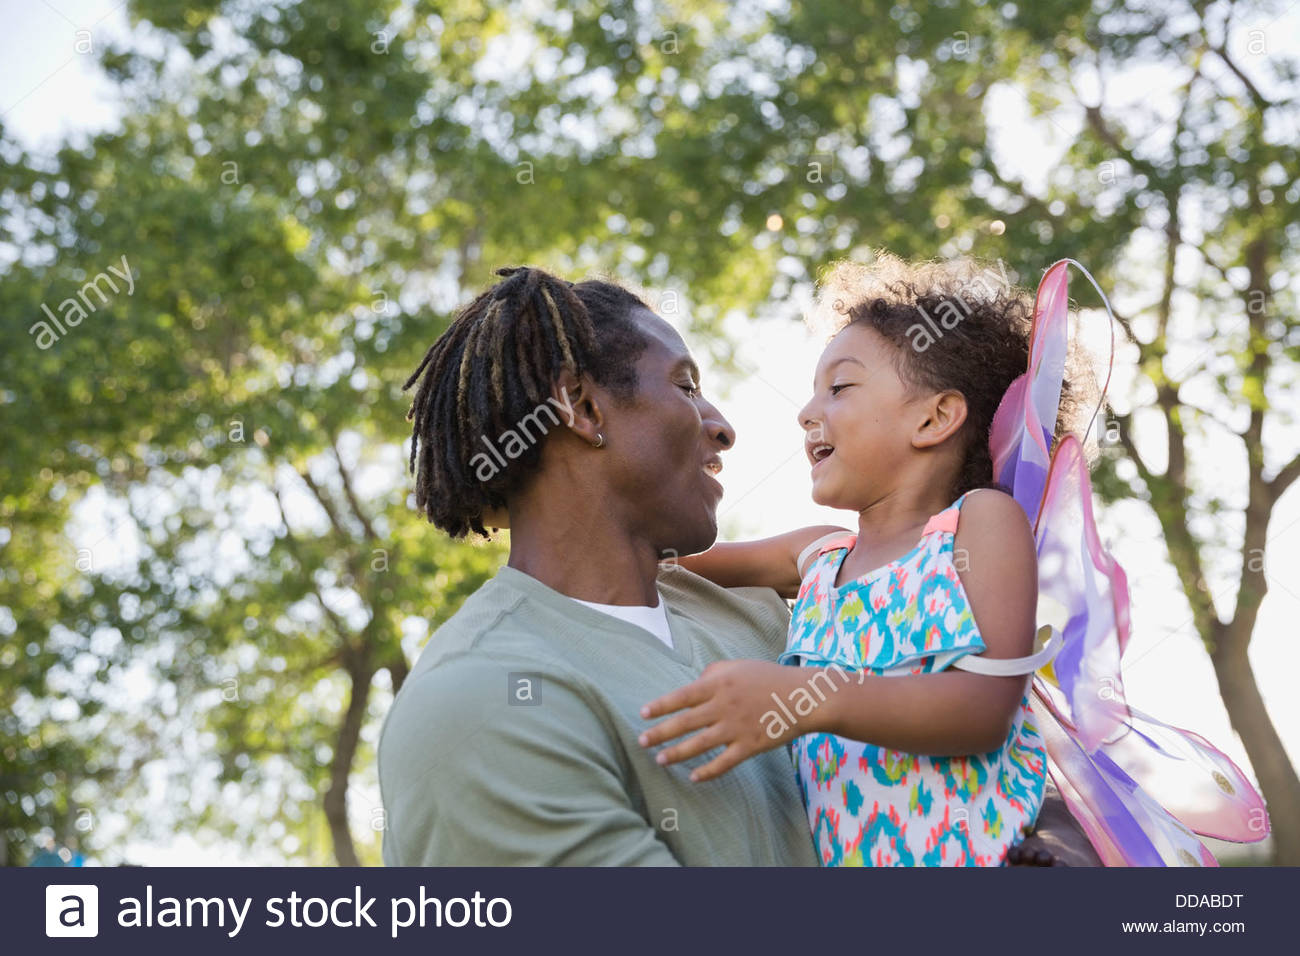 Father and daughter looking at each other in park - Stock Image